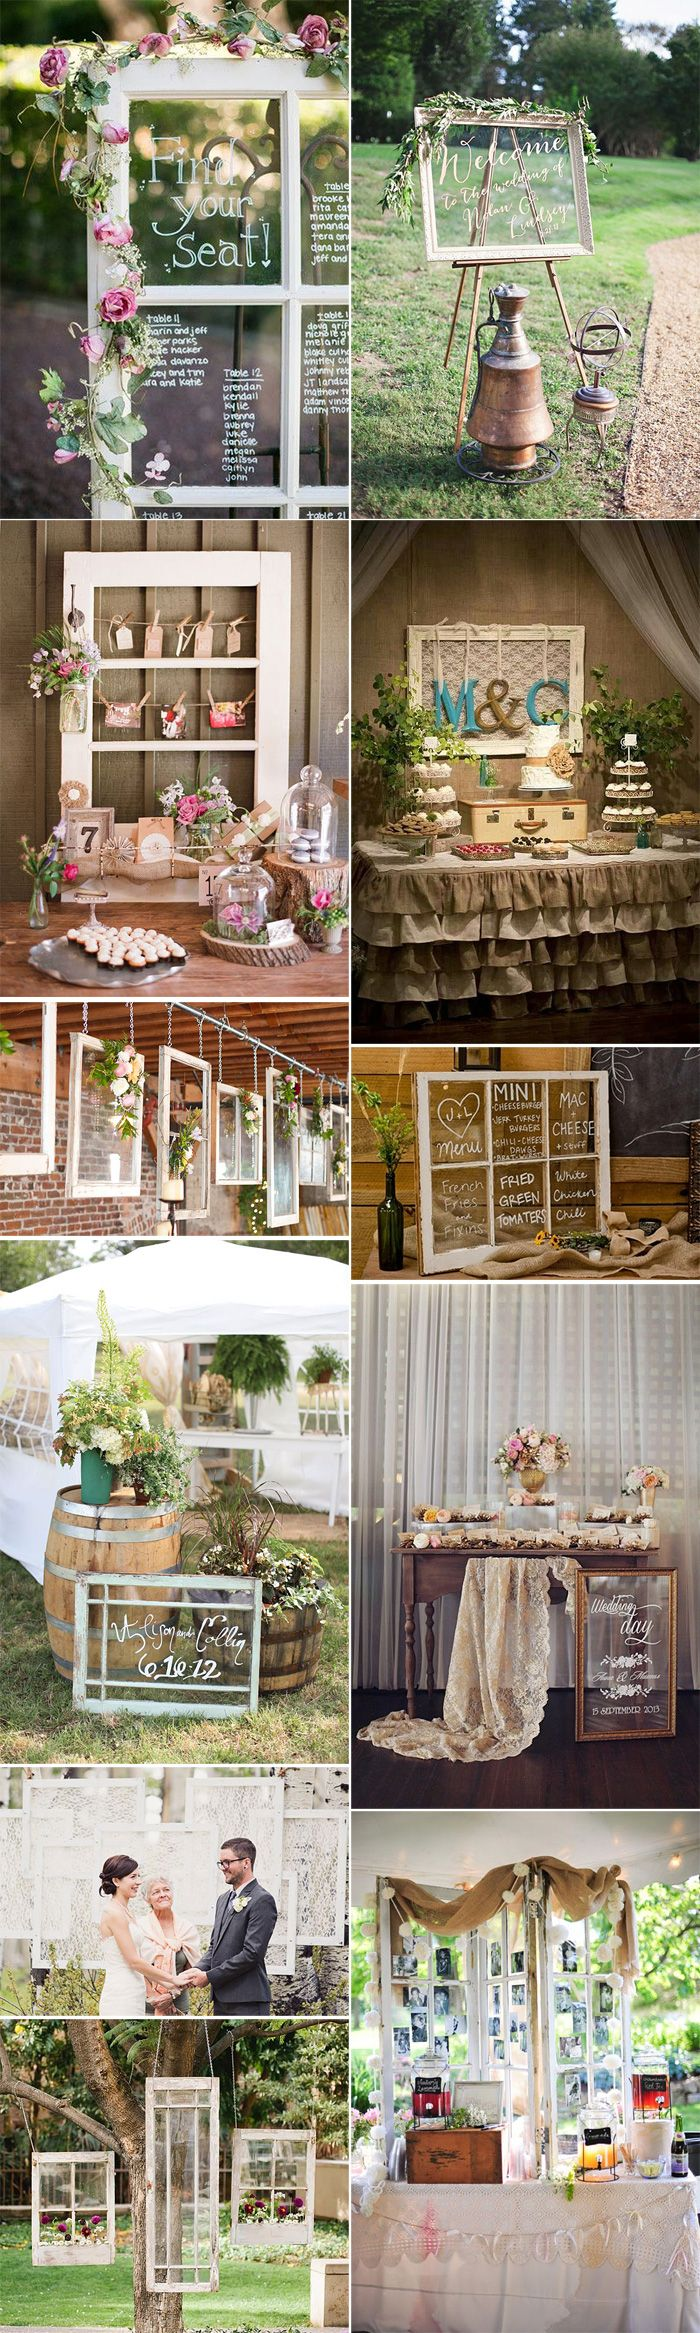 Decorar Marcos De Fotos Marcos De Ventana Antiguos 10 Ideas Para Decorar Bodas Tafel